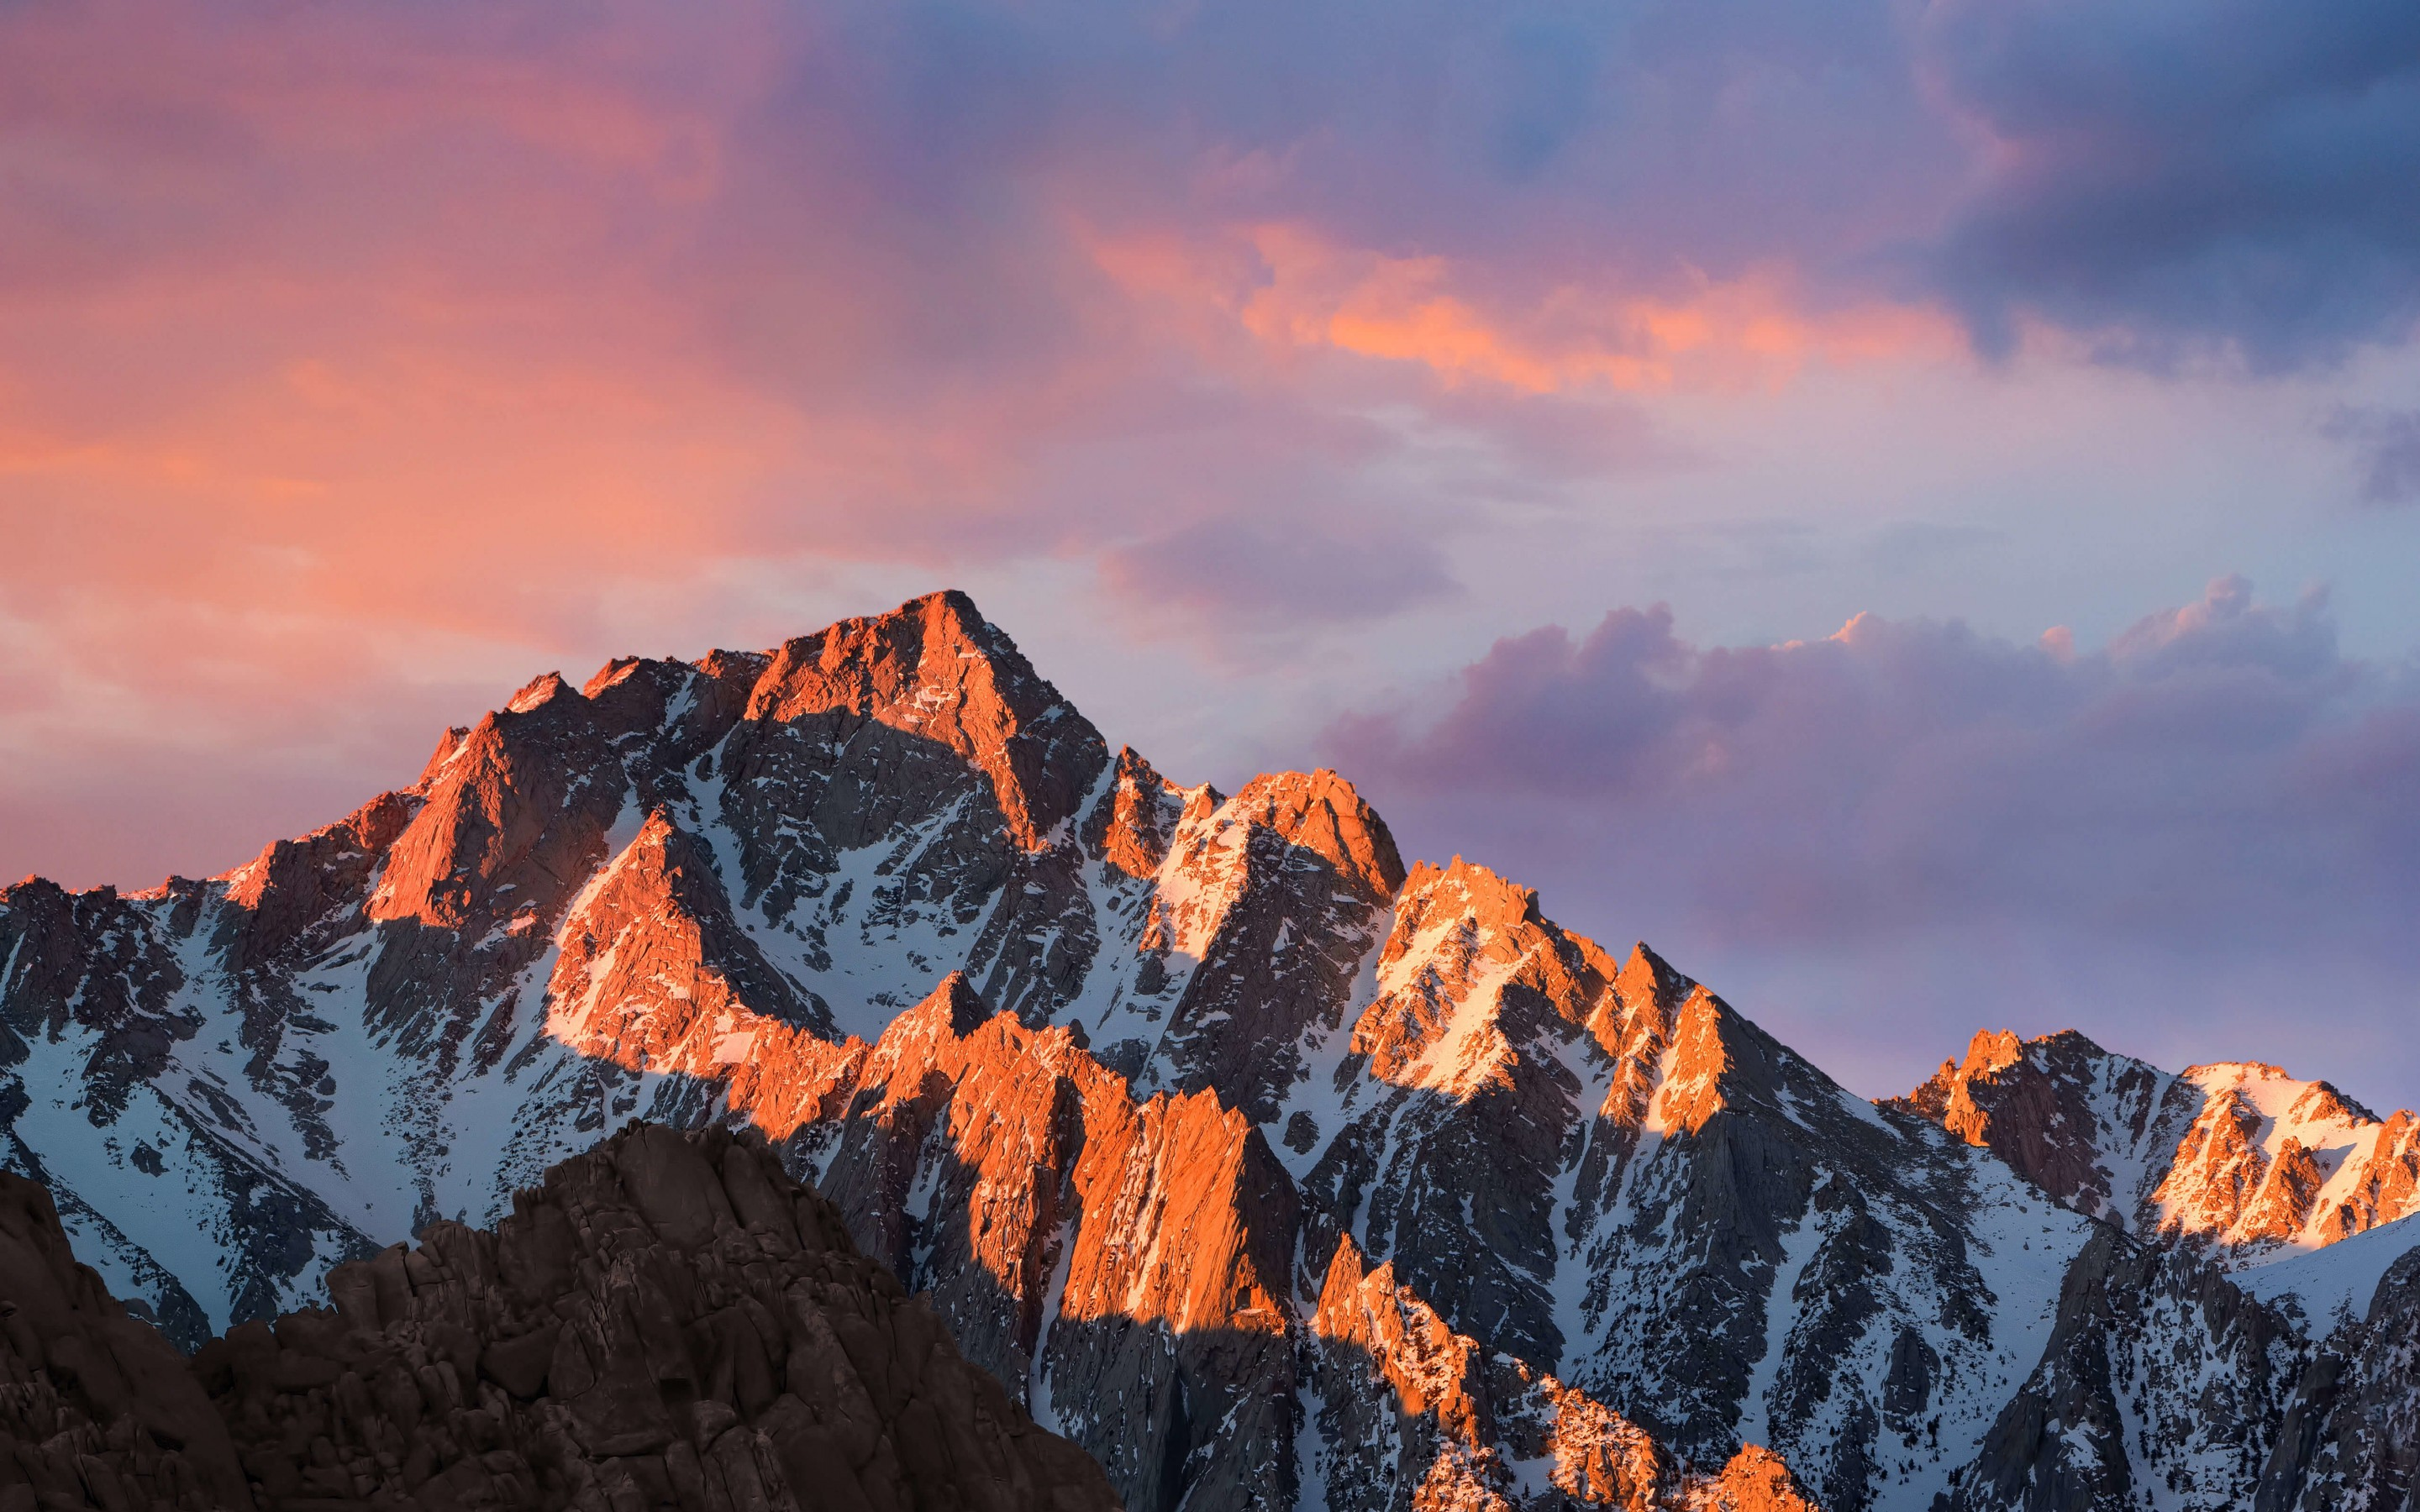 macOS Sierra Wallpaper for Desktop 2880x1800